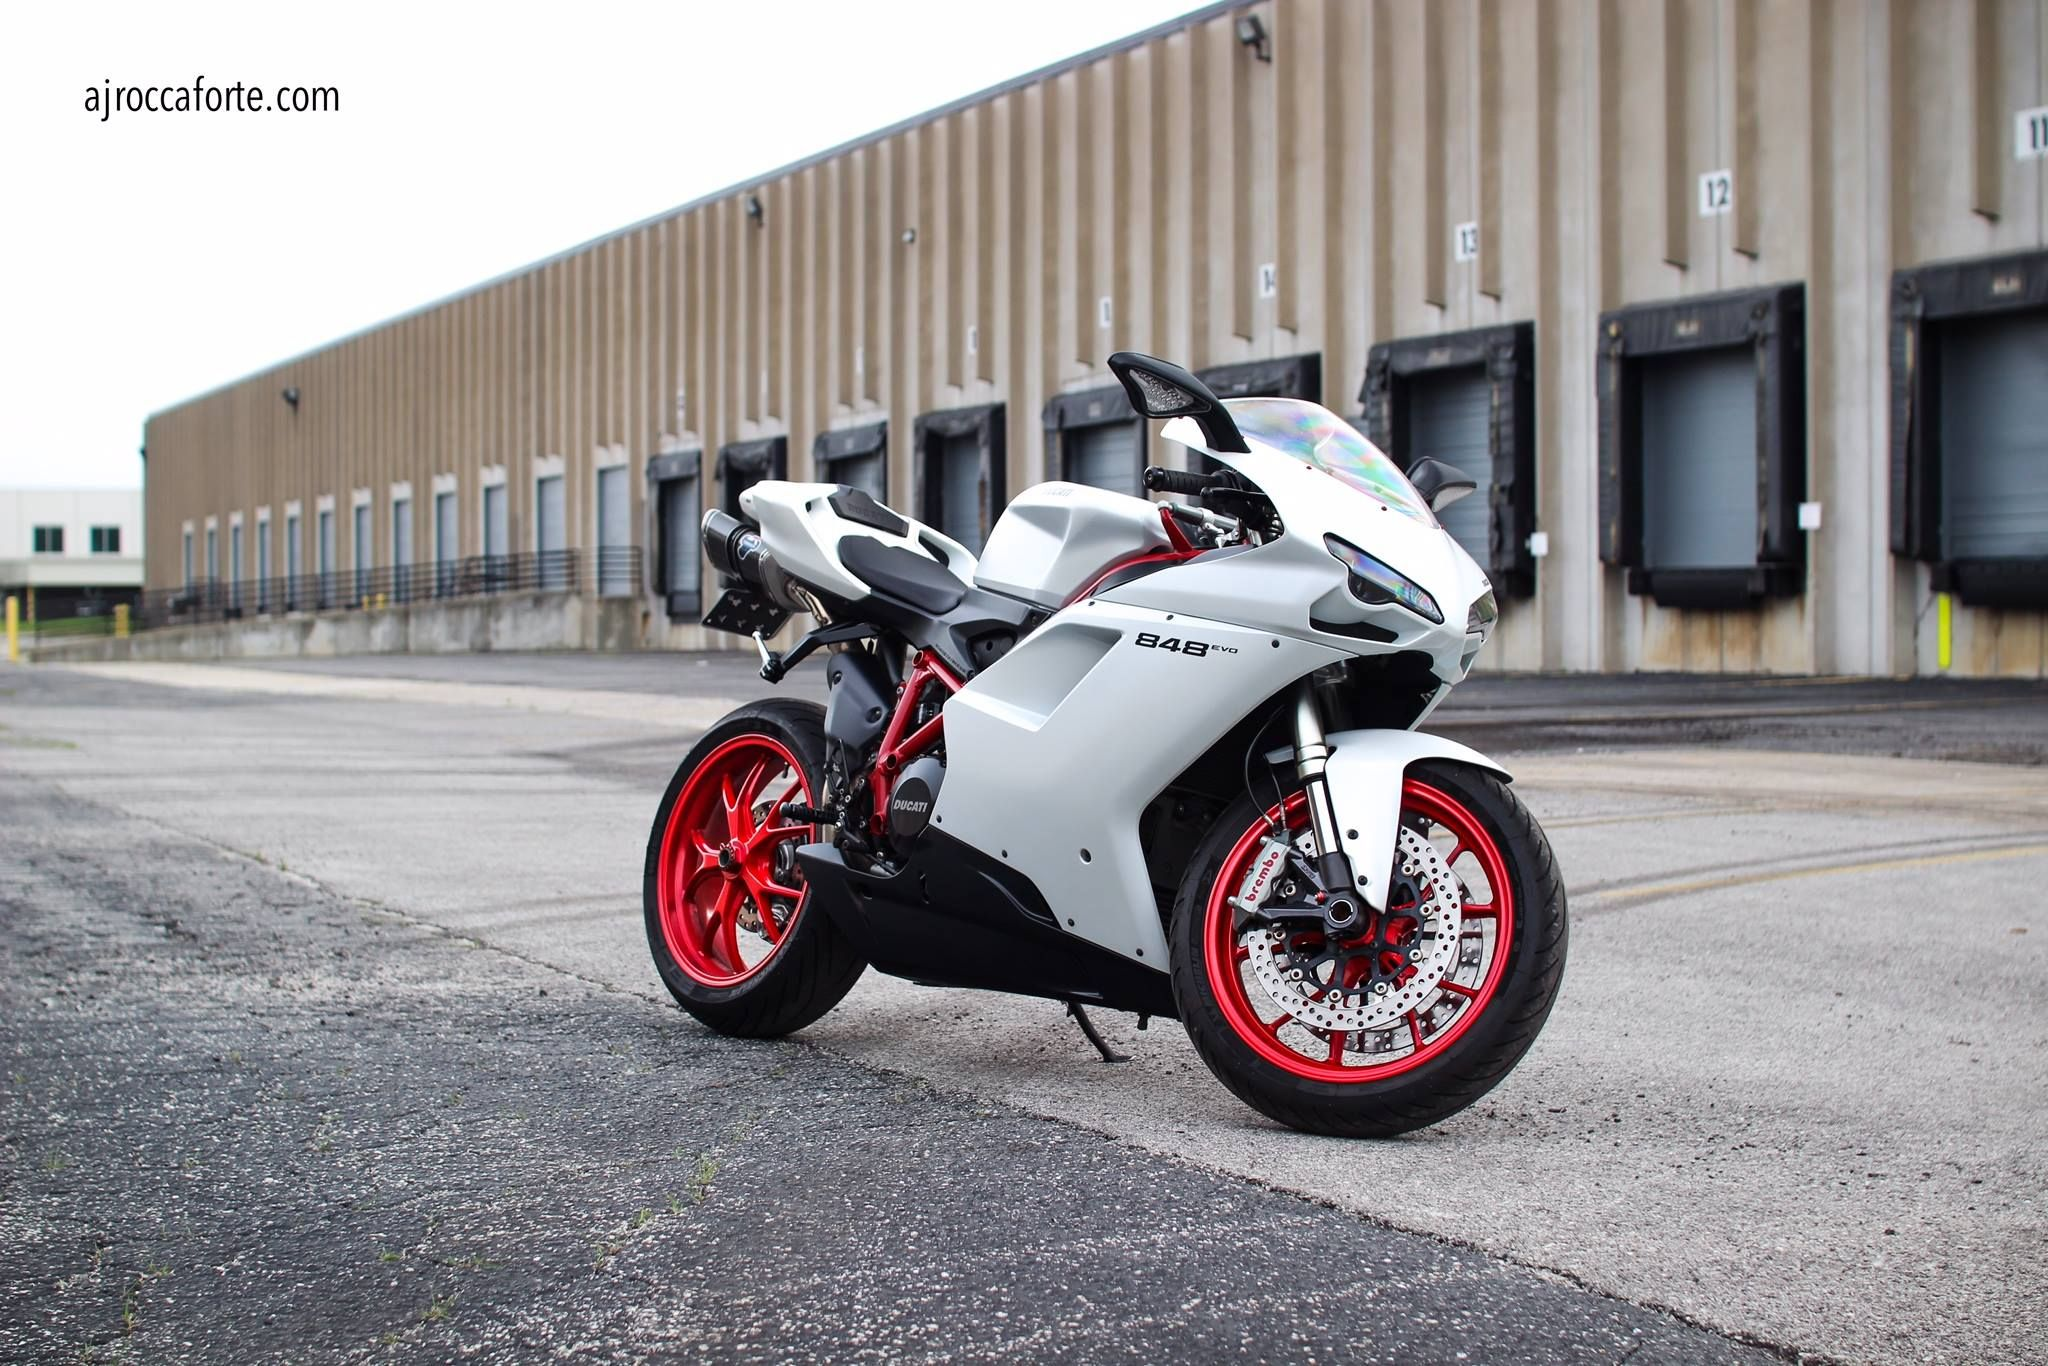 Ducati 848 EVO HD Wallpaper From Gallsourcecom HD Wallpaper 2048x1366